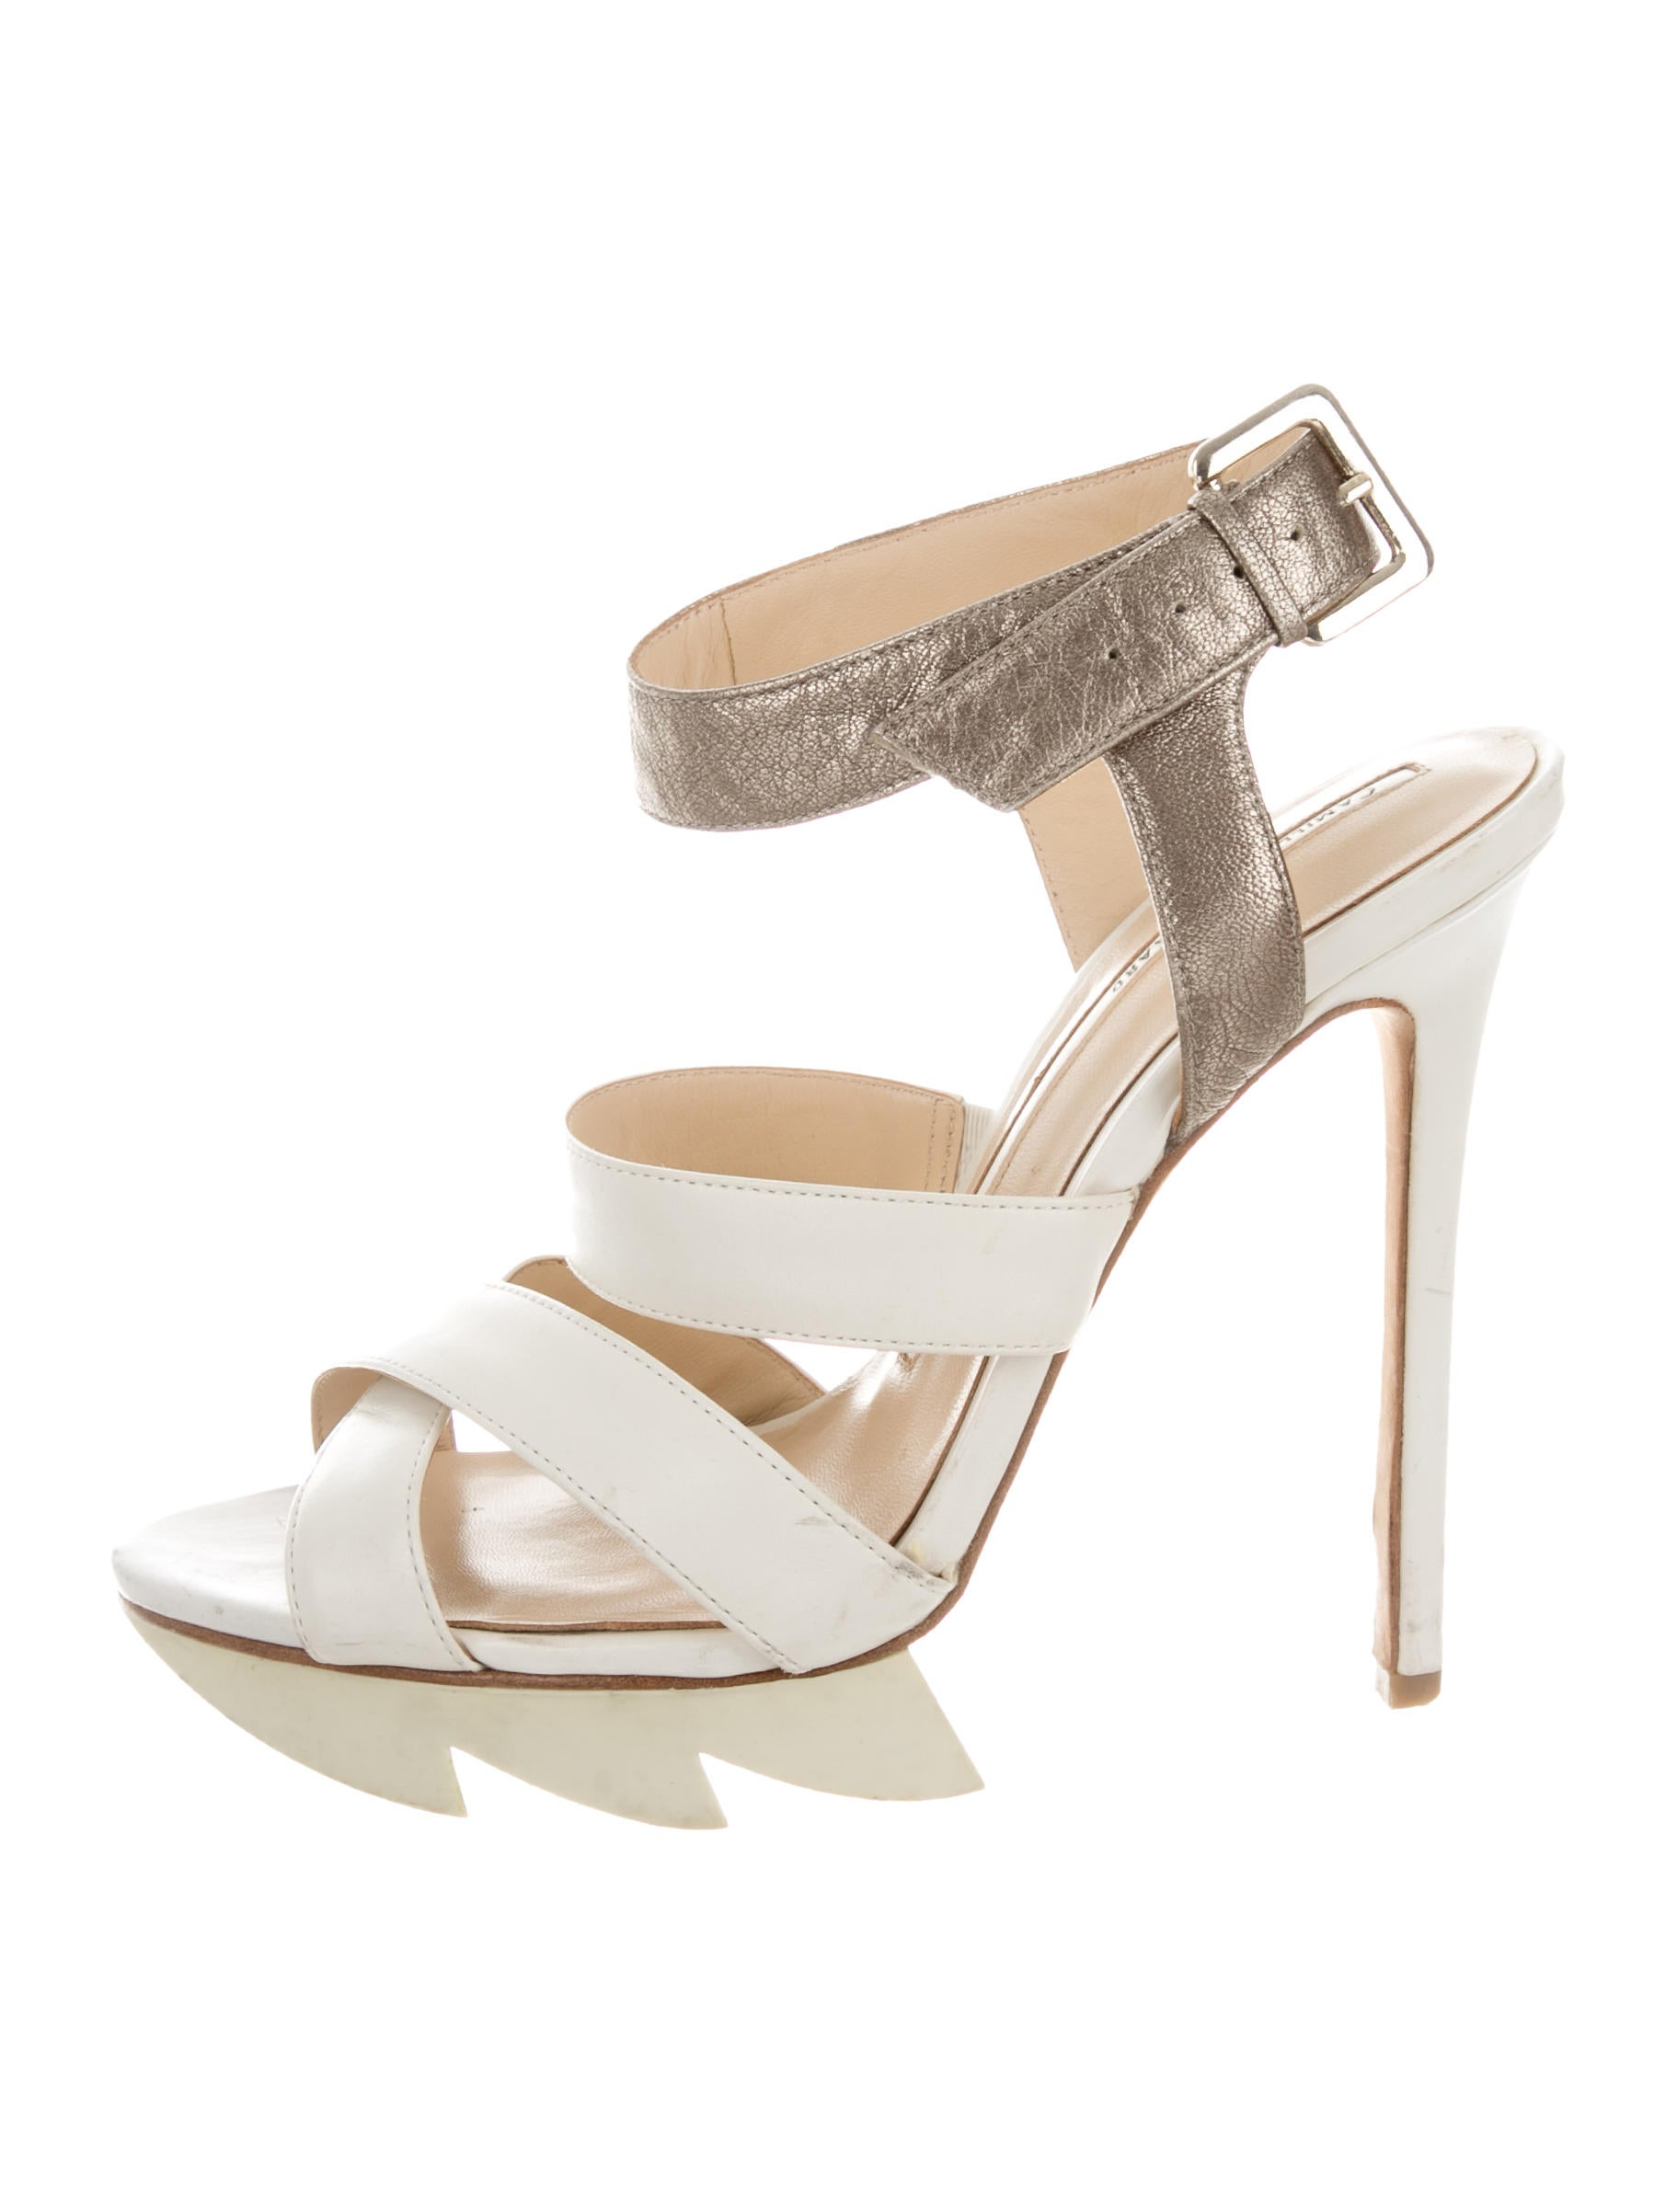 popular for sale Camilla Skovgaard Crossover Platform Sandals cheap choice excellent free shipping low price LFJMNpIG